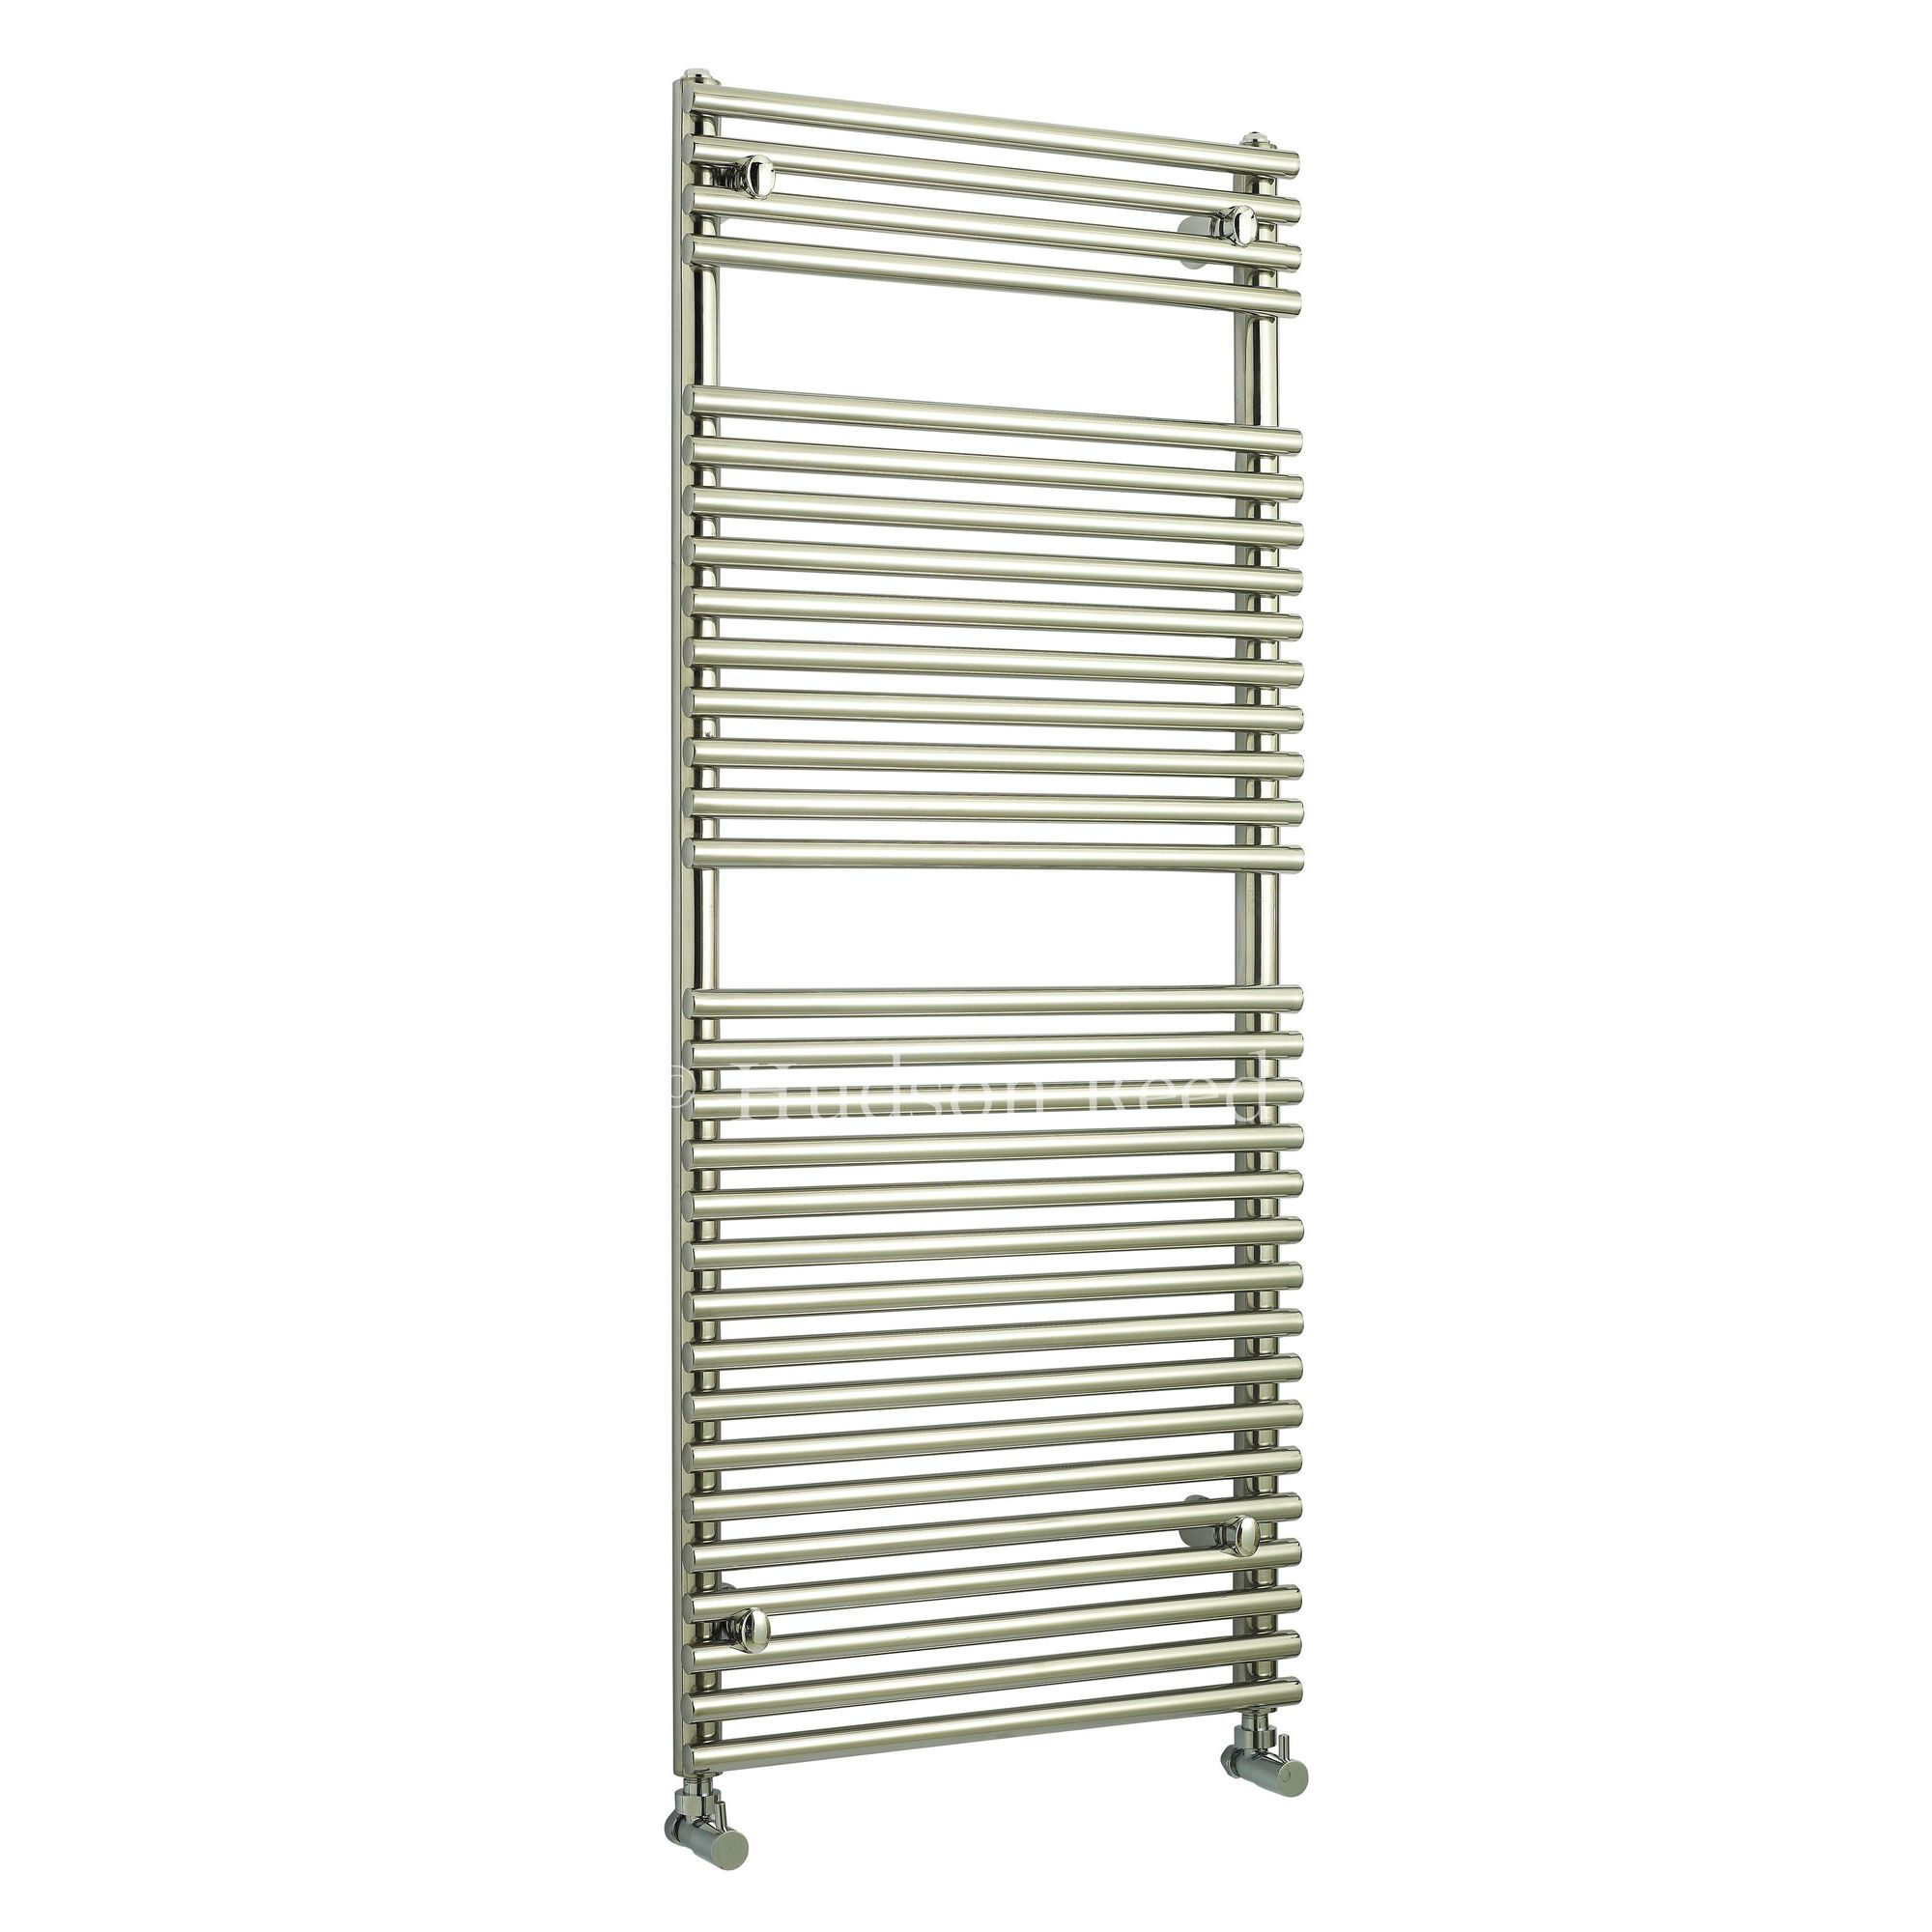 Hudson Reed Series 502 Heated Towel Rail - 180 cm x 38.1 cm at Tesco Direct